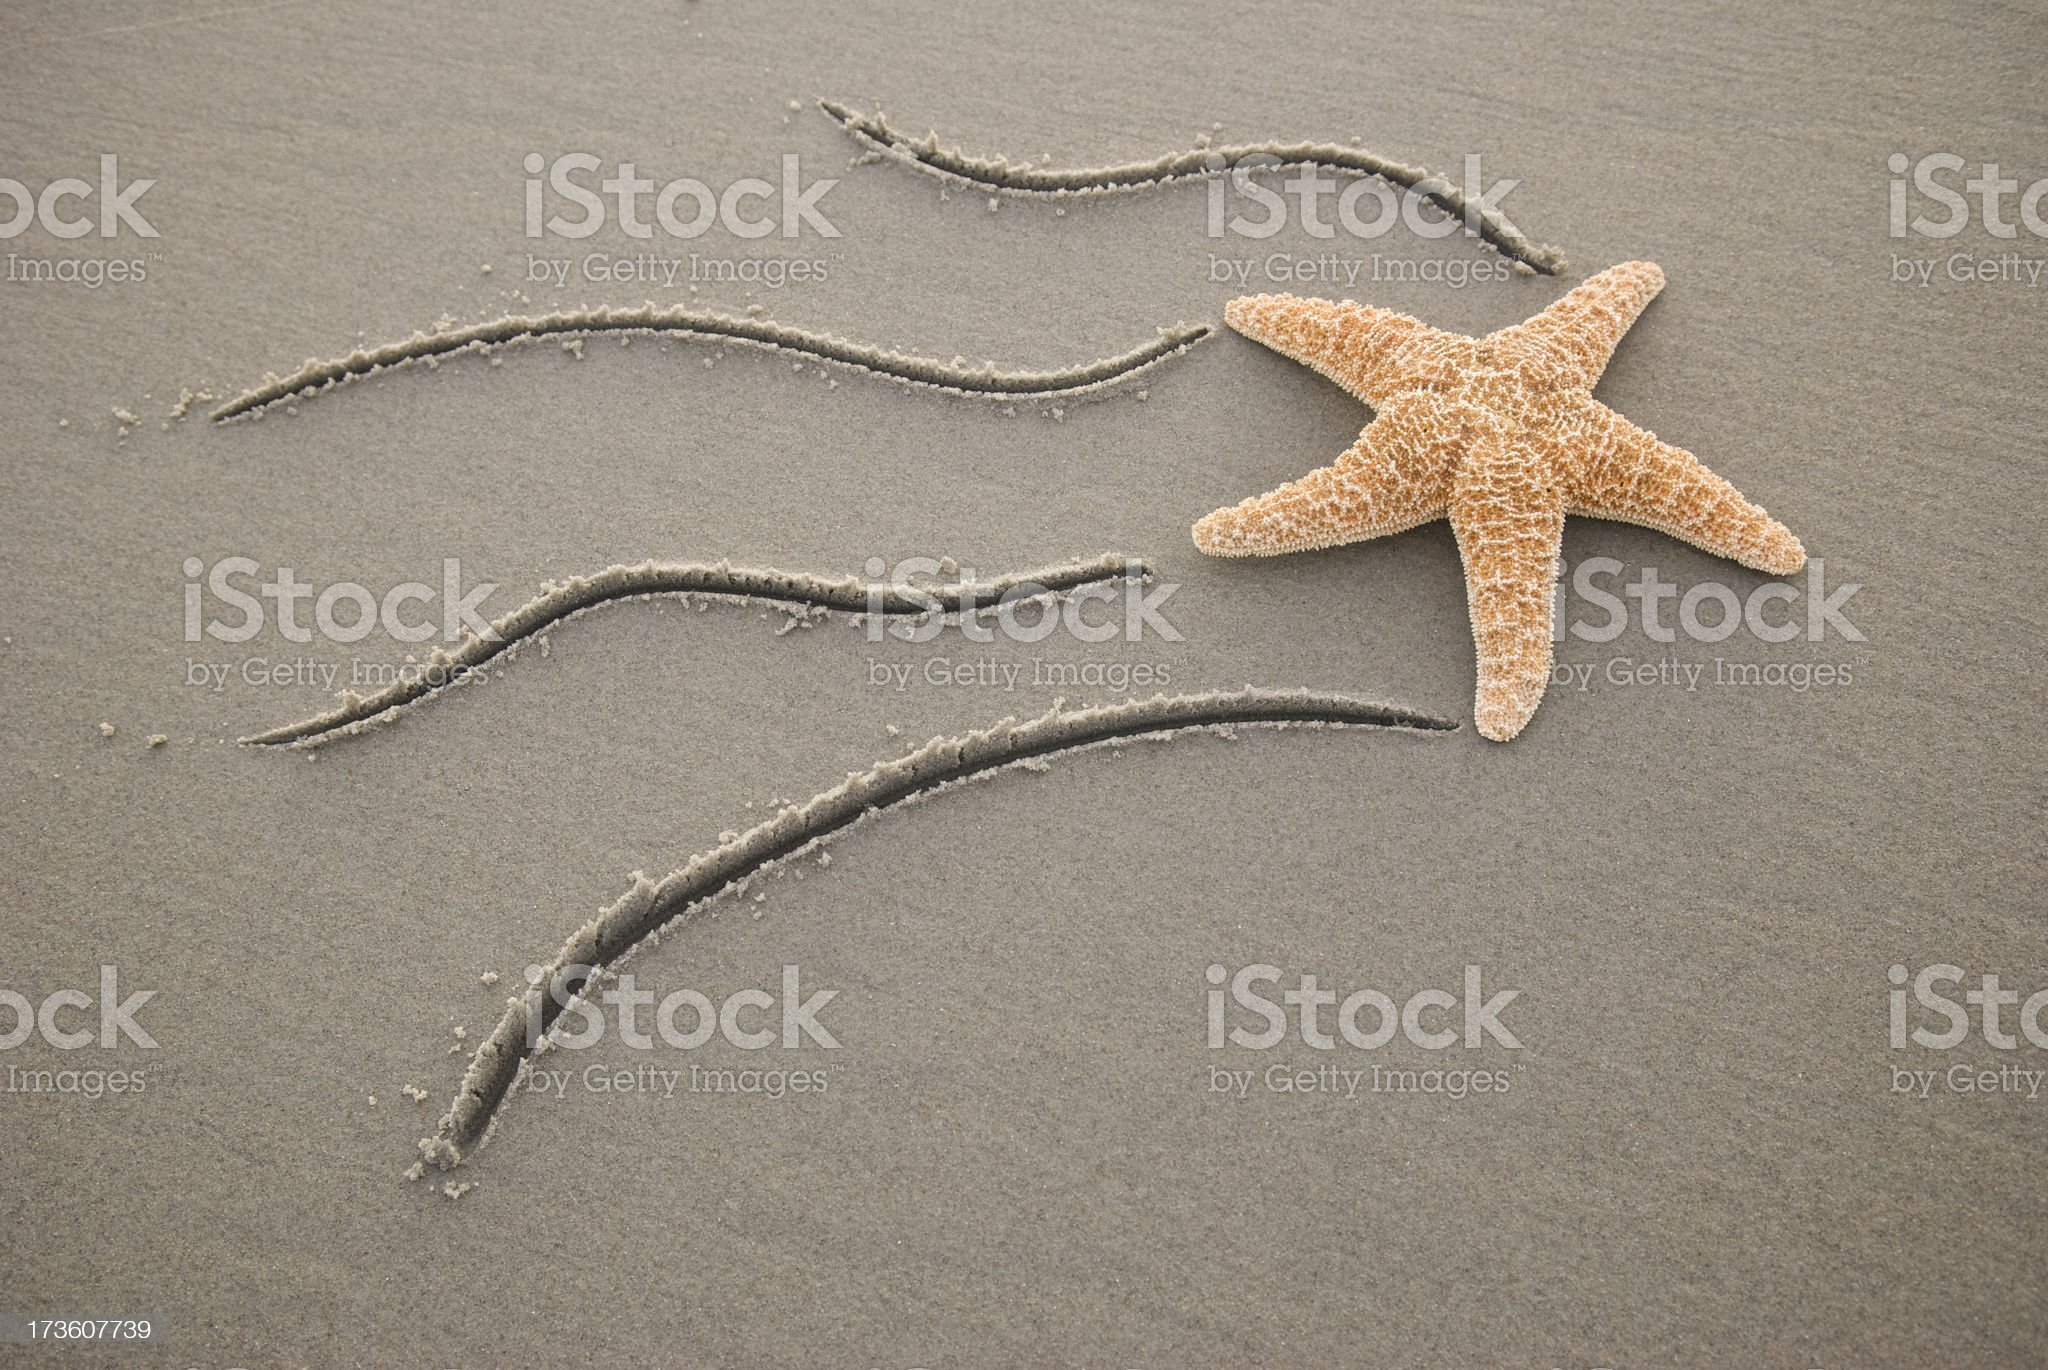 Make a Wish on Shooting Star (fish) royalty-free stock photo